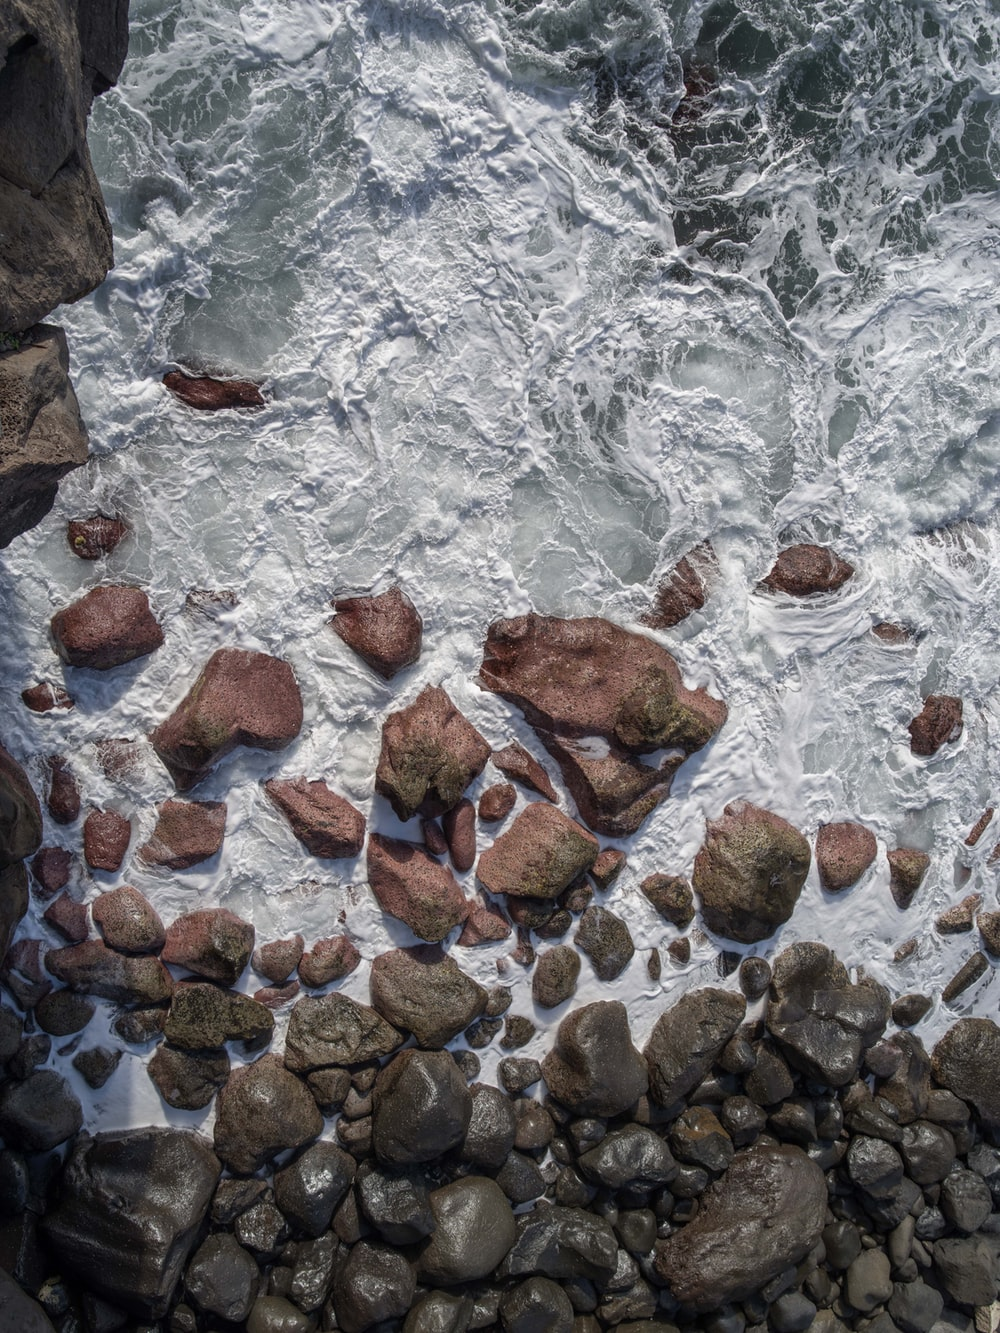 aerial view of rocks on body of water